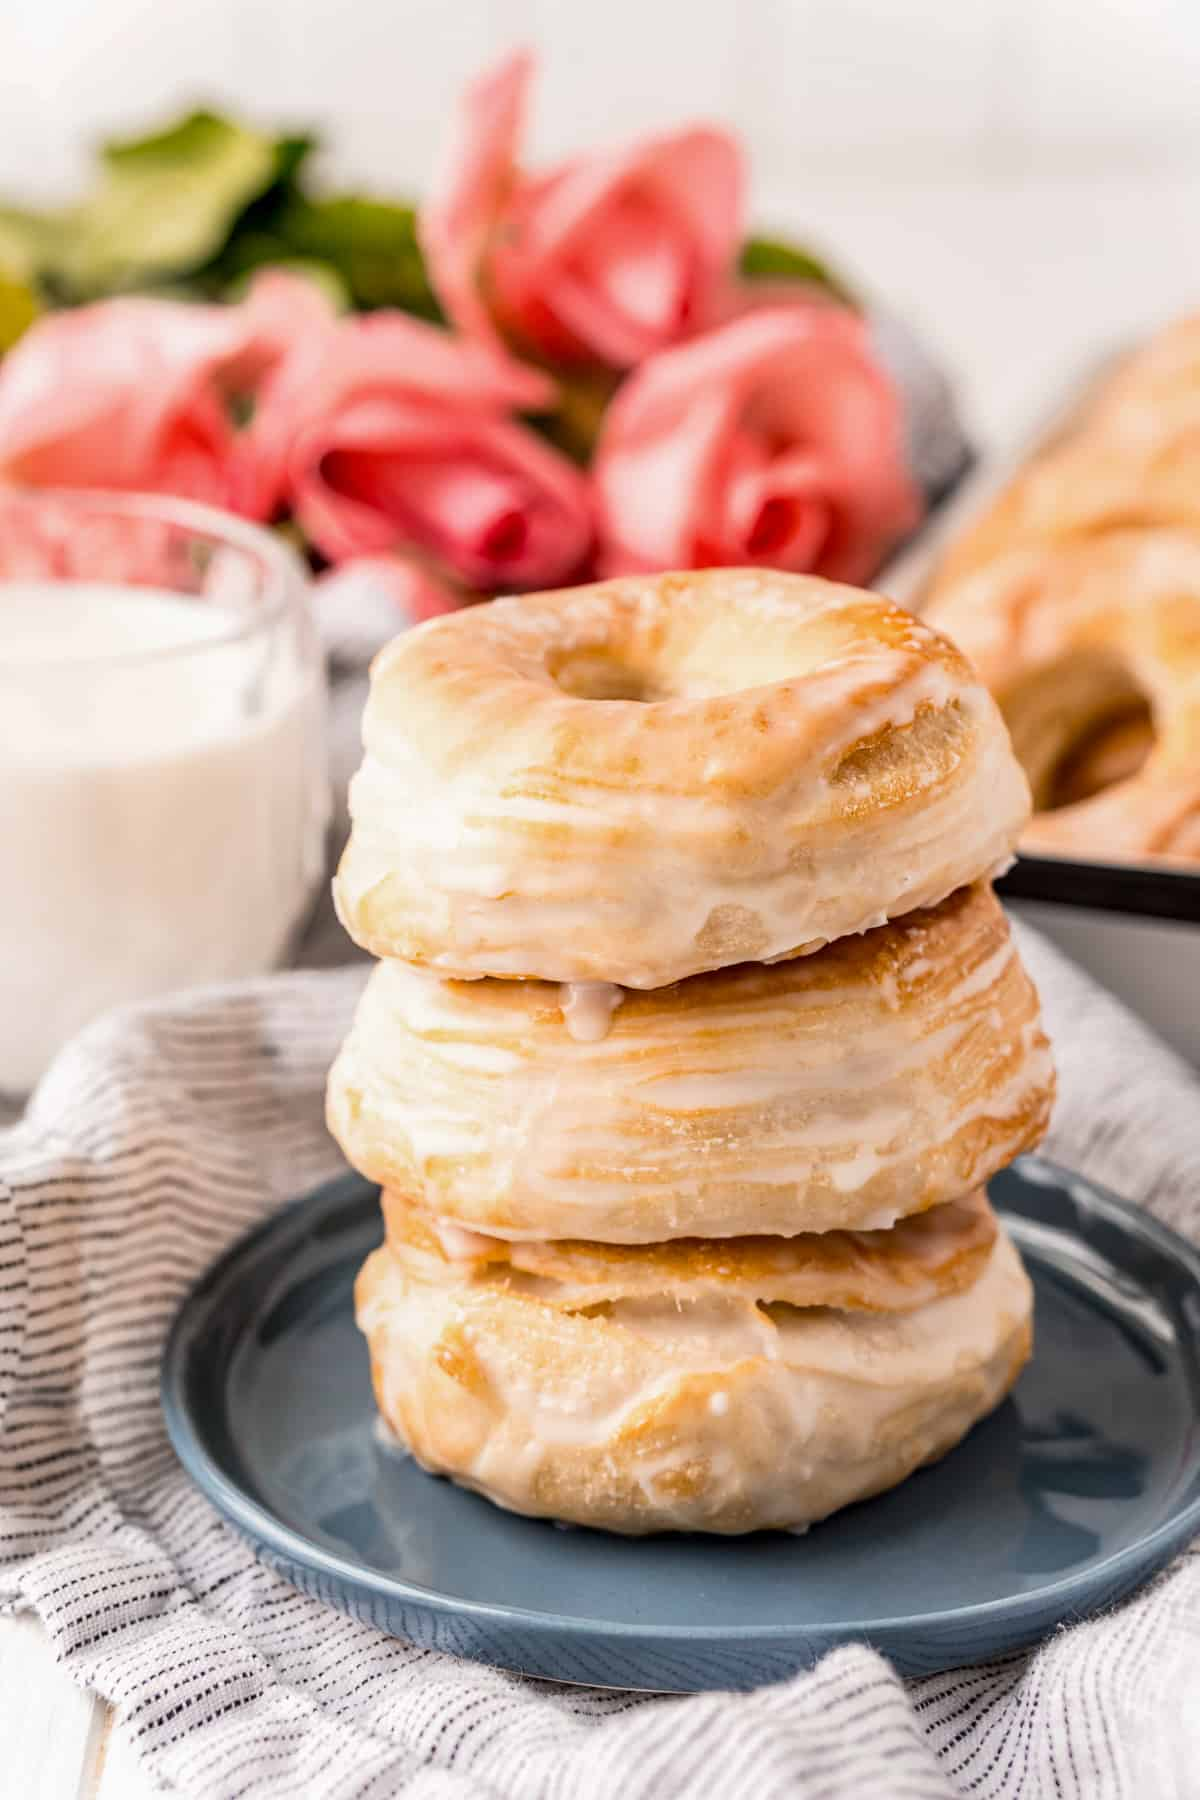 Three Stacked Air Fryer Donuts on plate